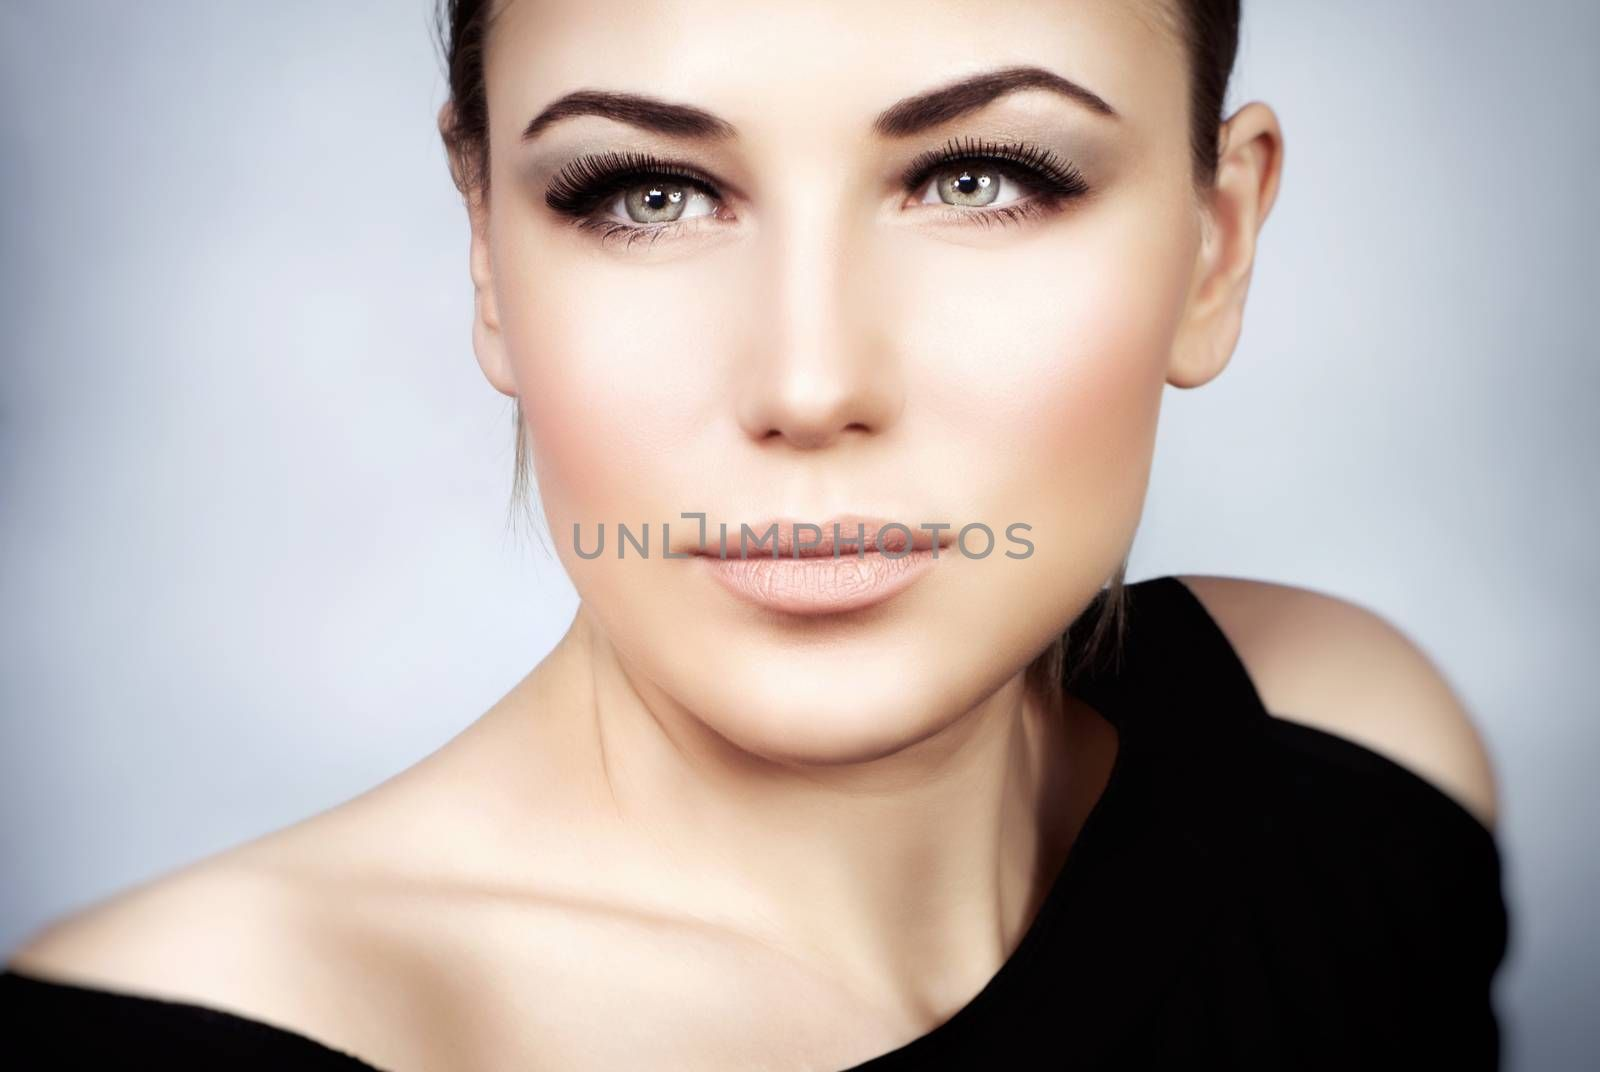 Closeup portrait of a beautiful woman with stylish makeup over gray background, smoky eyes and perfect skin tone, gorgeous seductive model